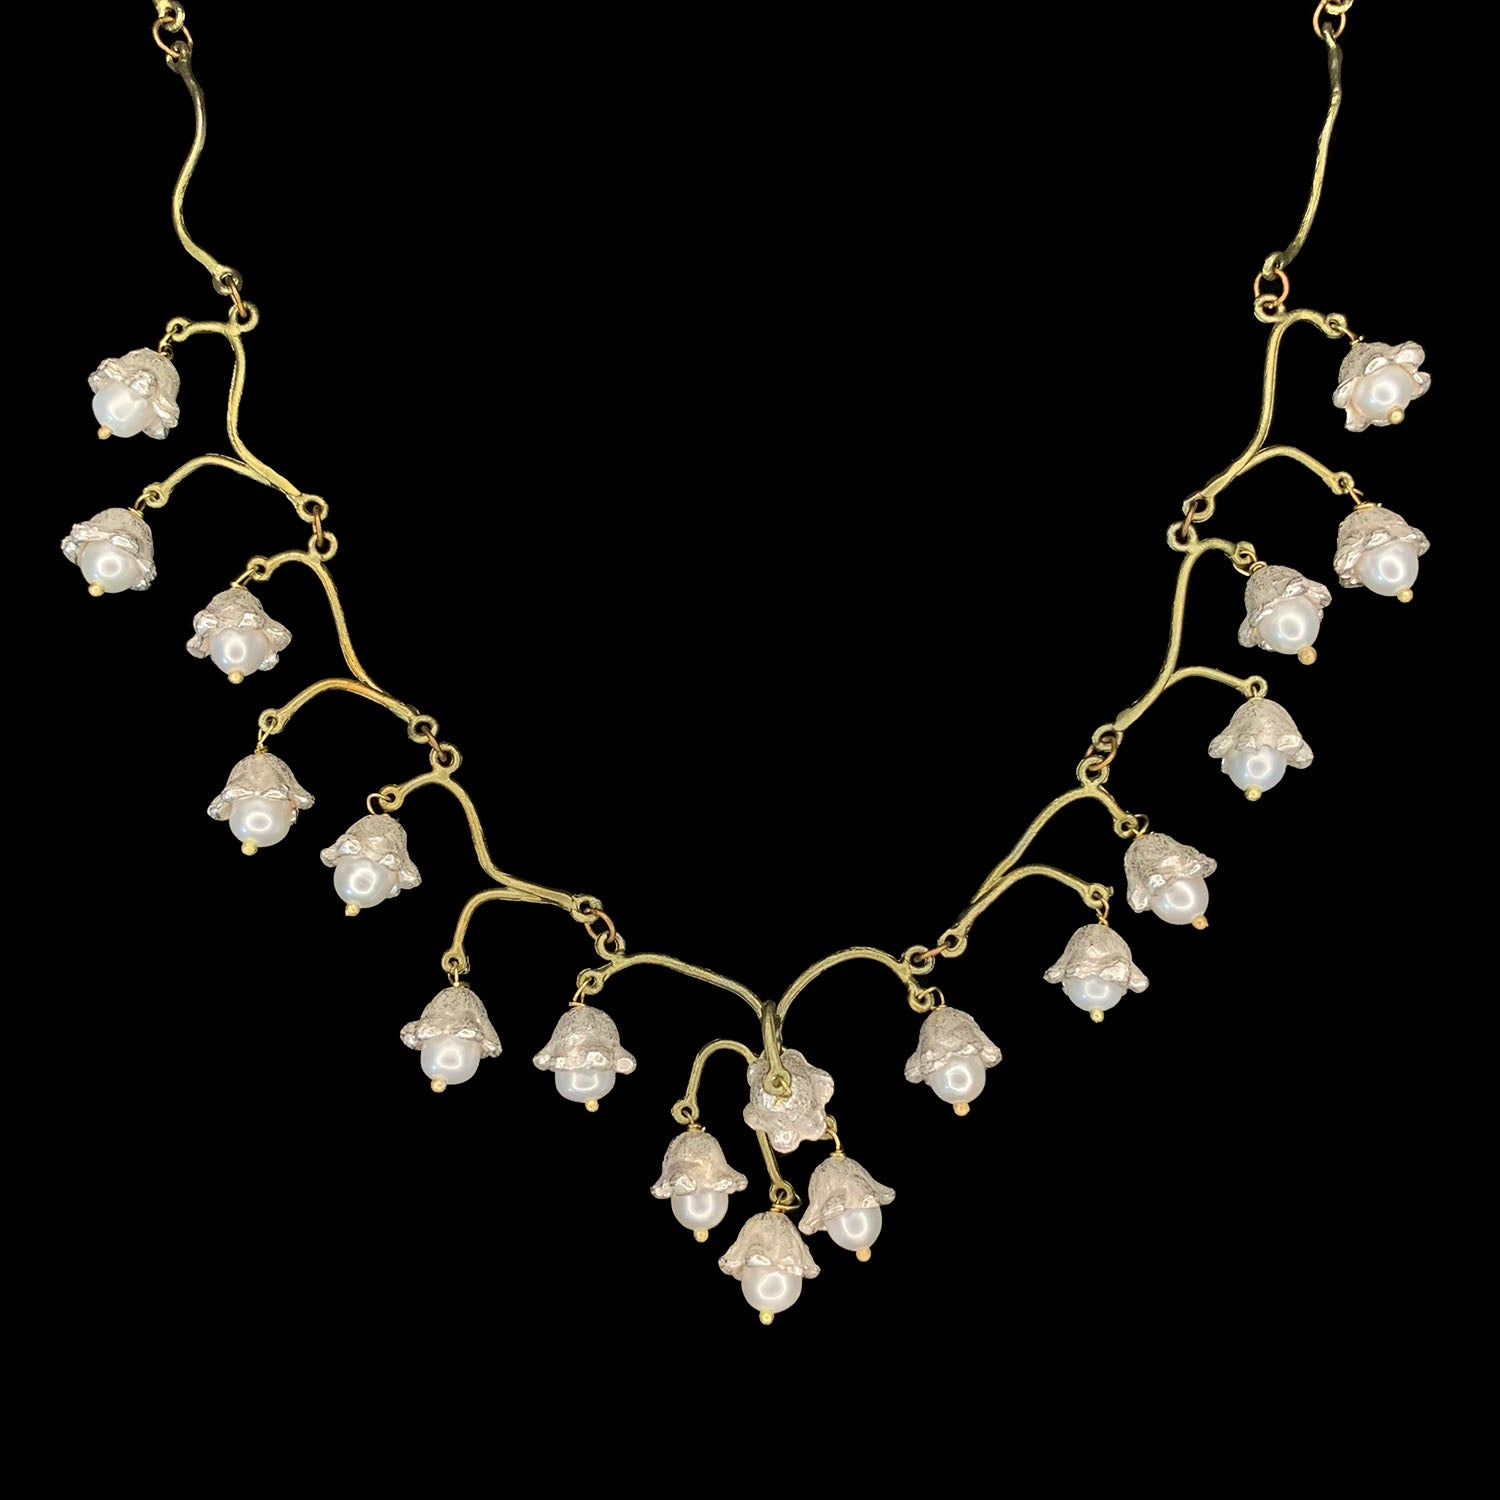 Lily of the Valley Necklace - Flowers